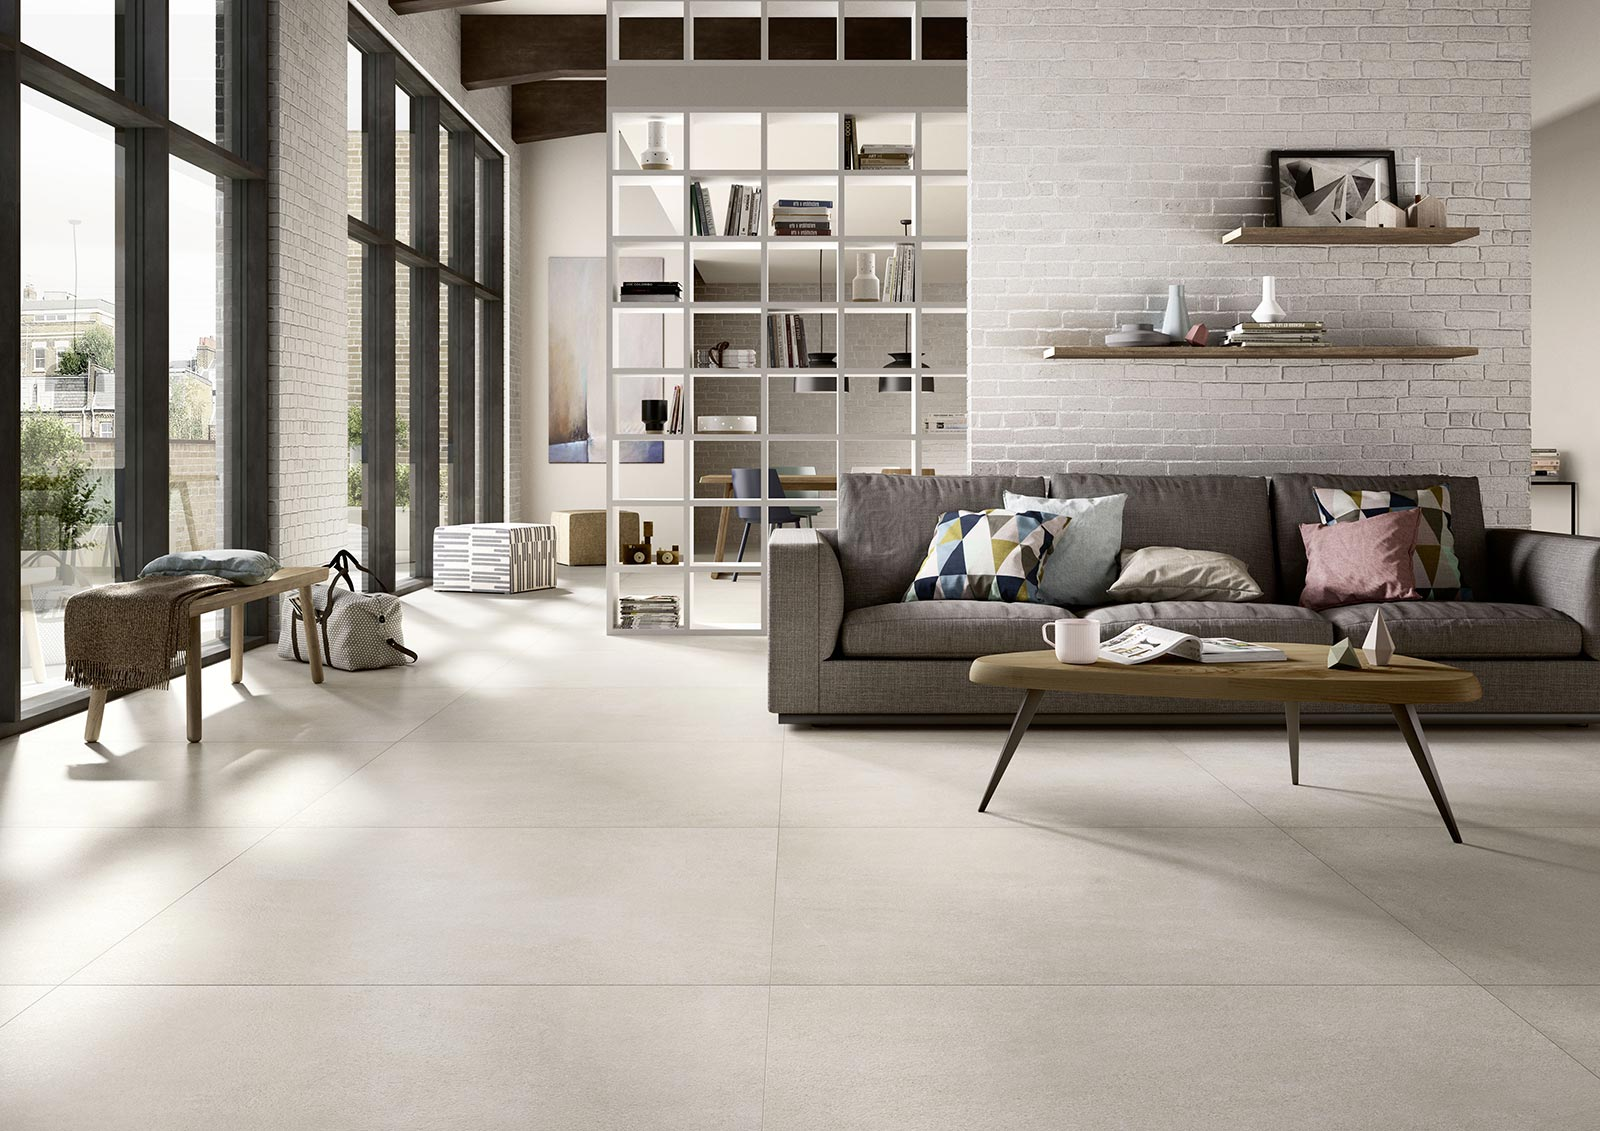 Carrelage salon inspiration d co marazzi - Idee carrelage salon ...